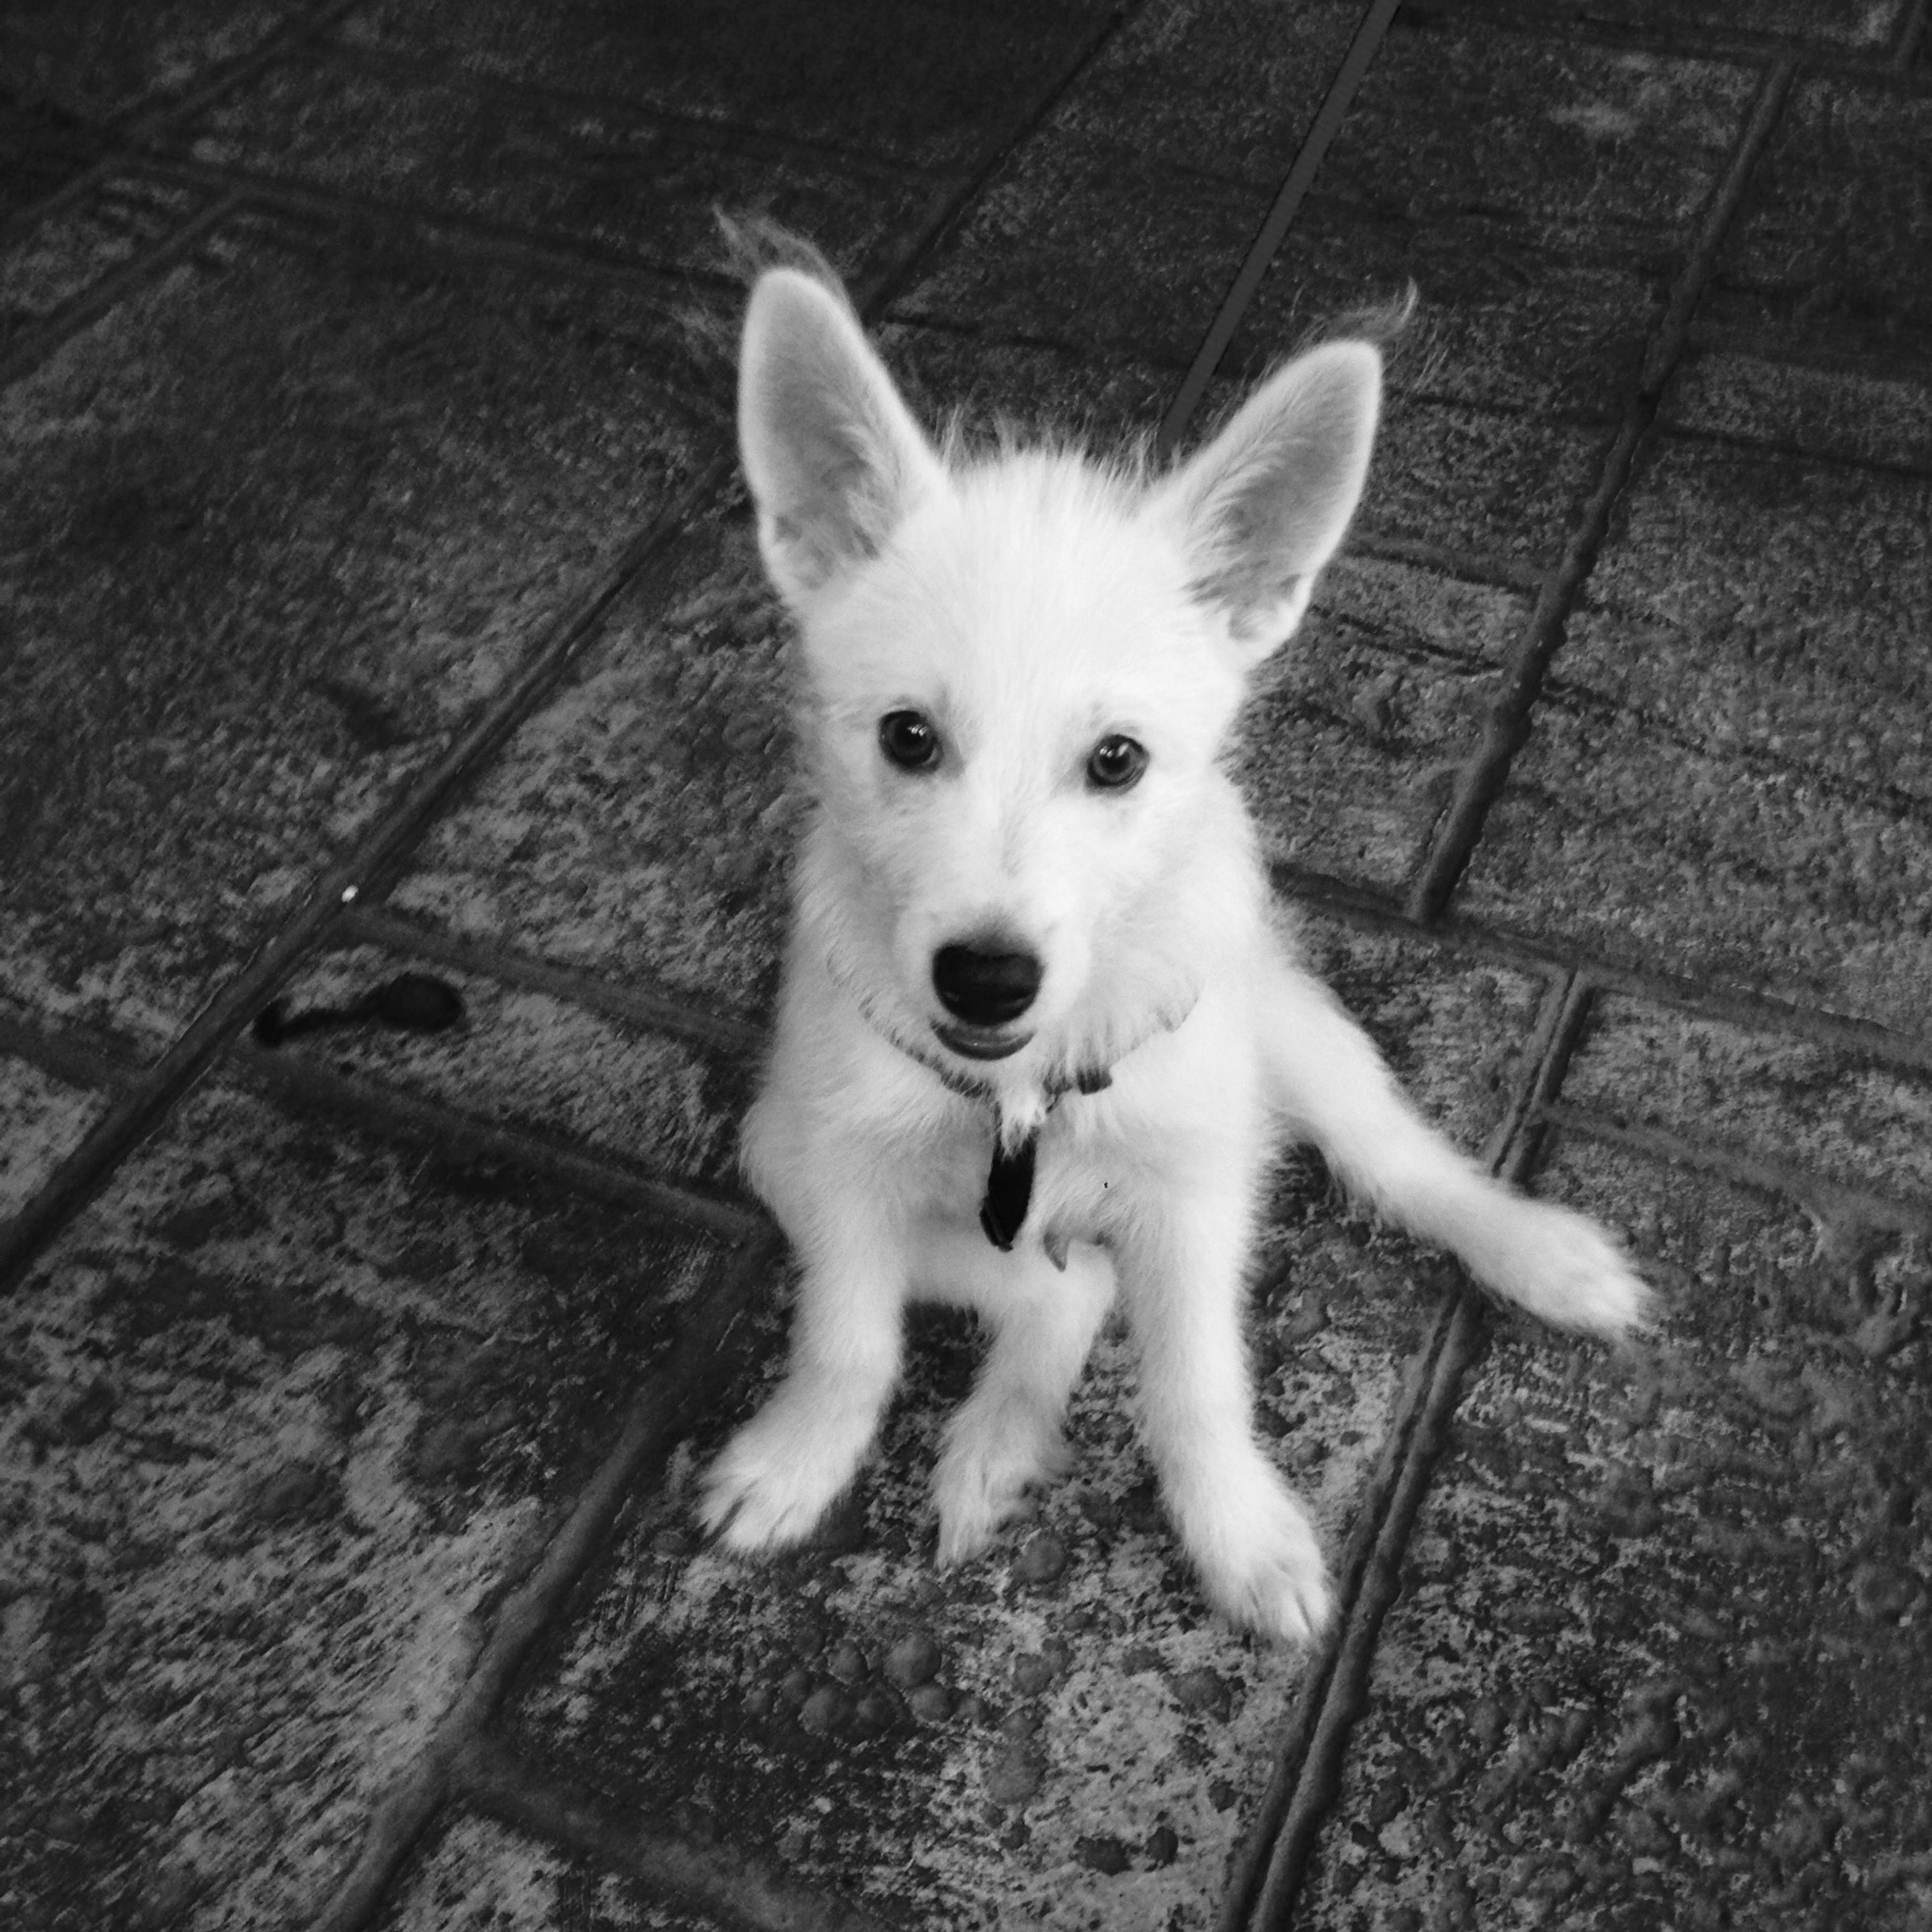 dog, animal themes, one animal, pets, domestic animals, high angle view, mammal, looking at camera, portrait, sitting, puppy, standing, pet leash, cute, full length, young animal, no people, street, day, outdoors